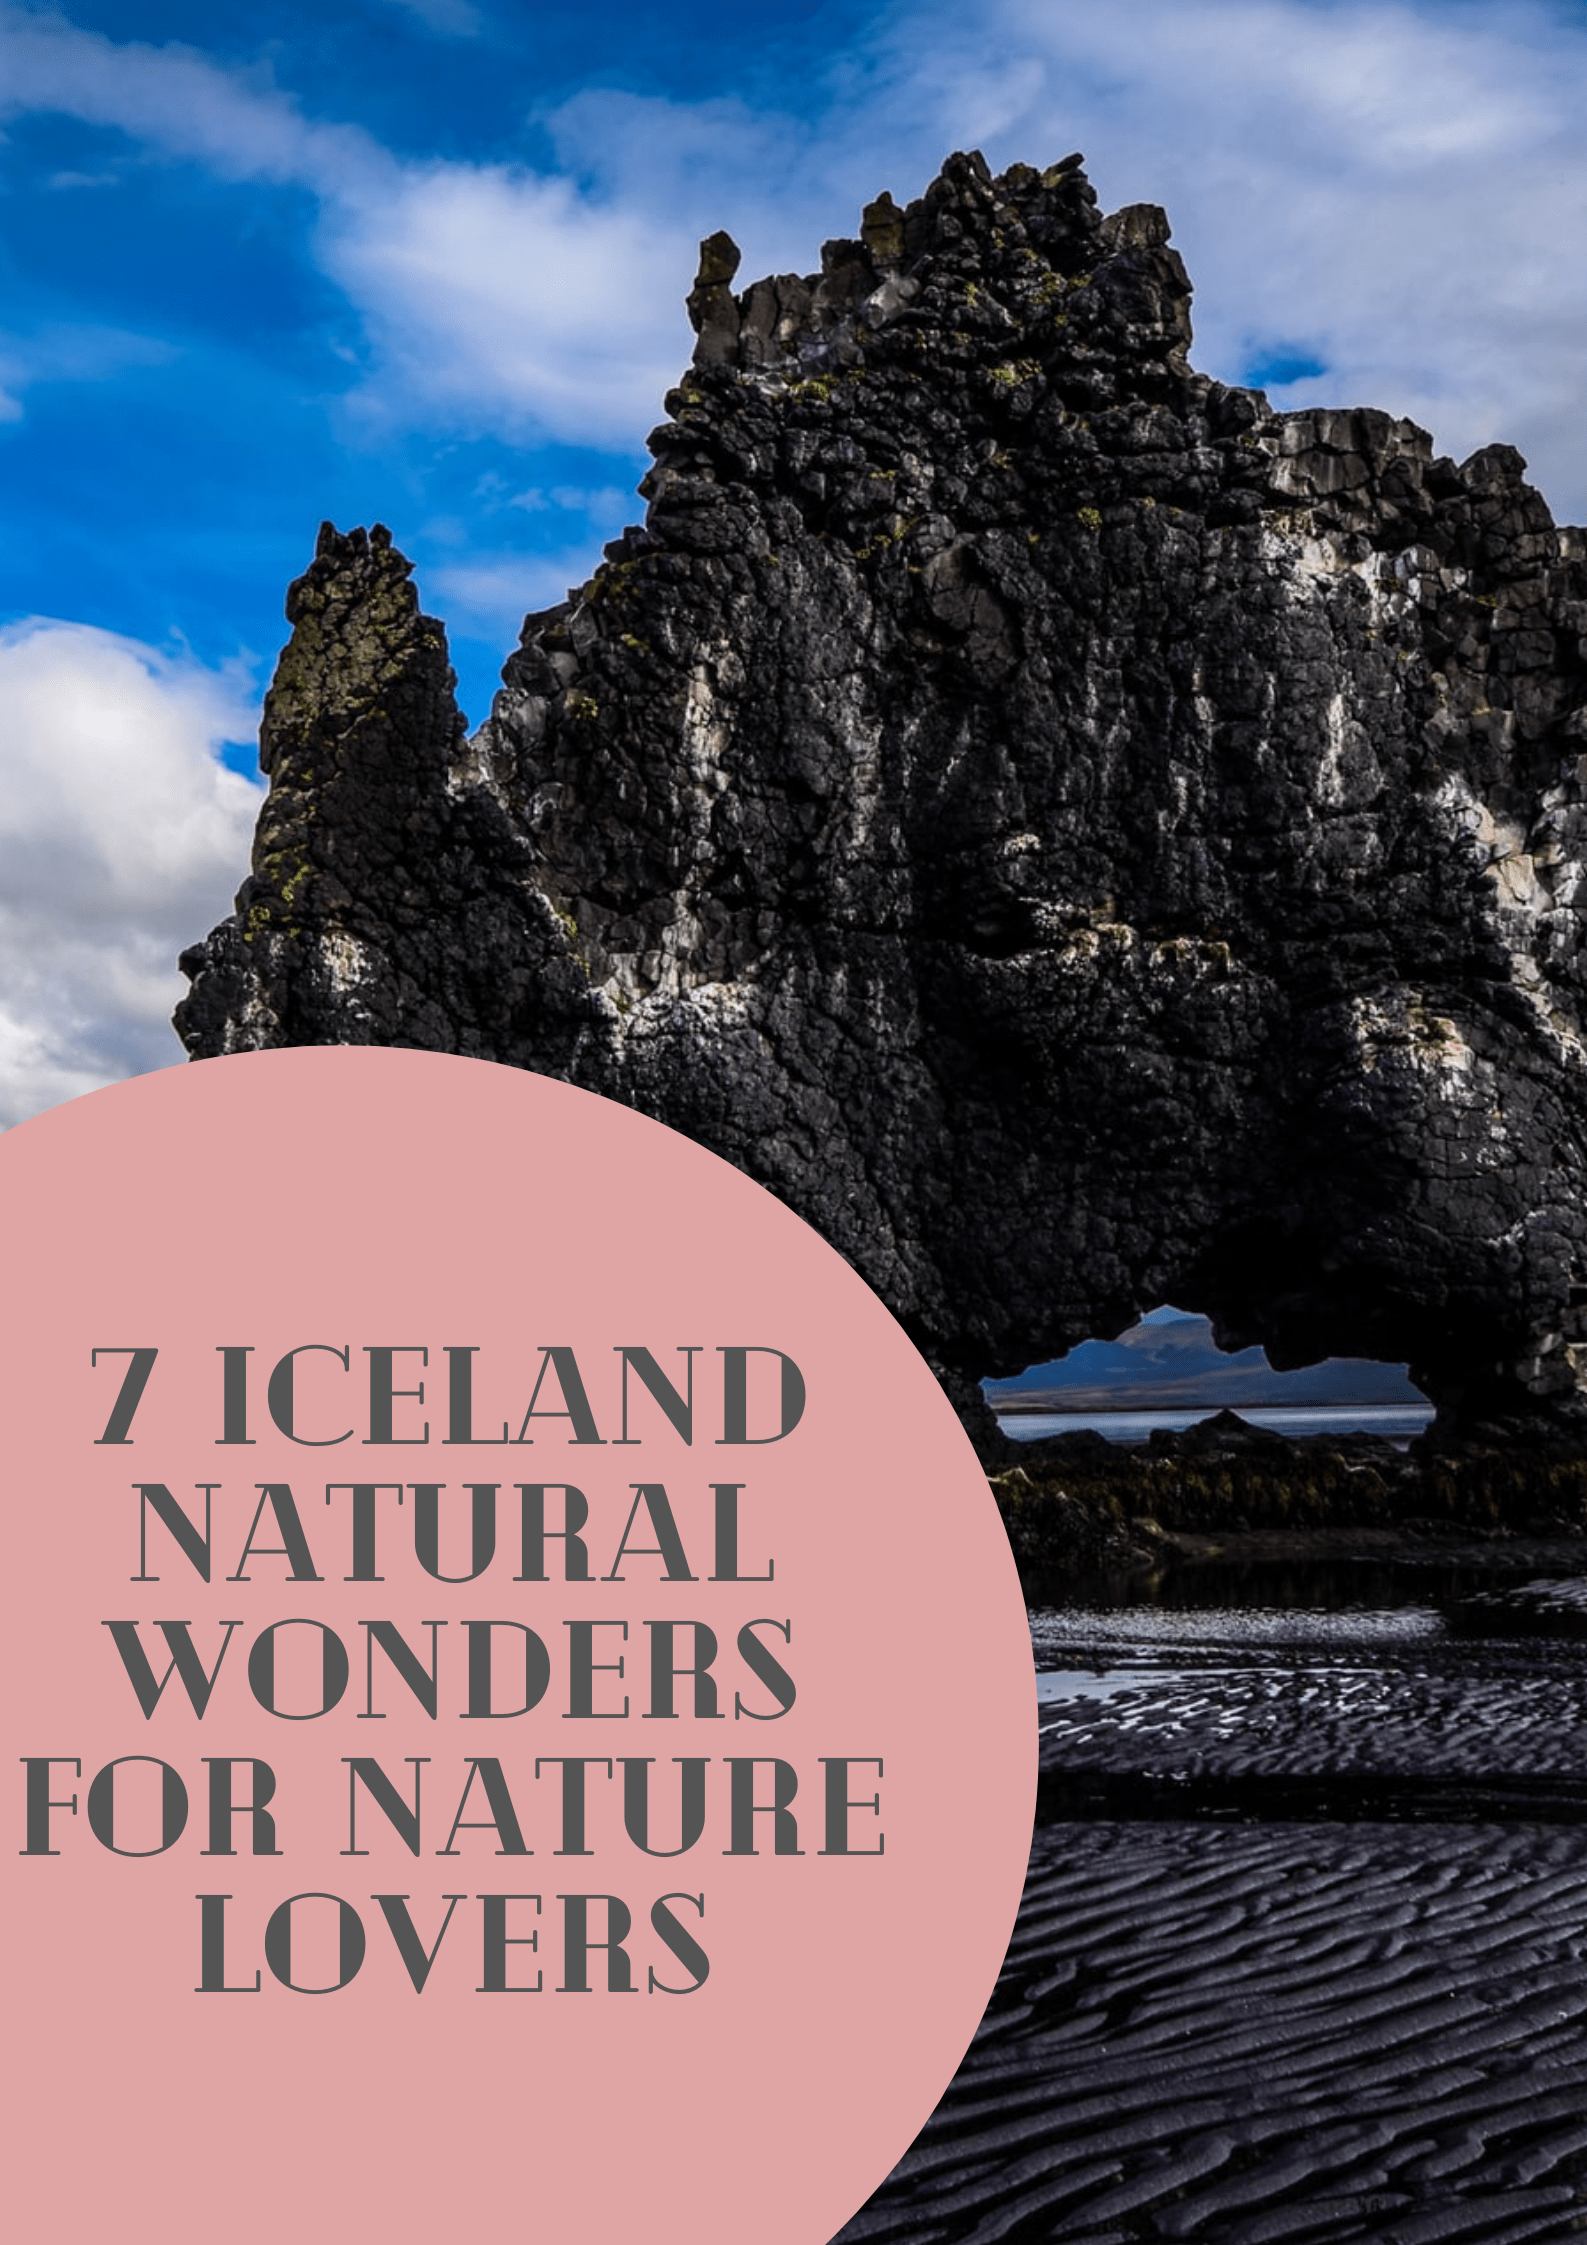 7 Iceland Natural Wonders for Nature Lovers